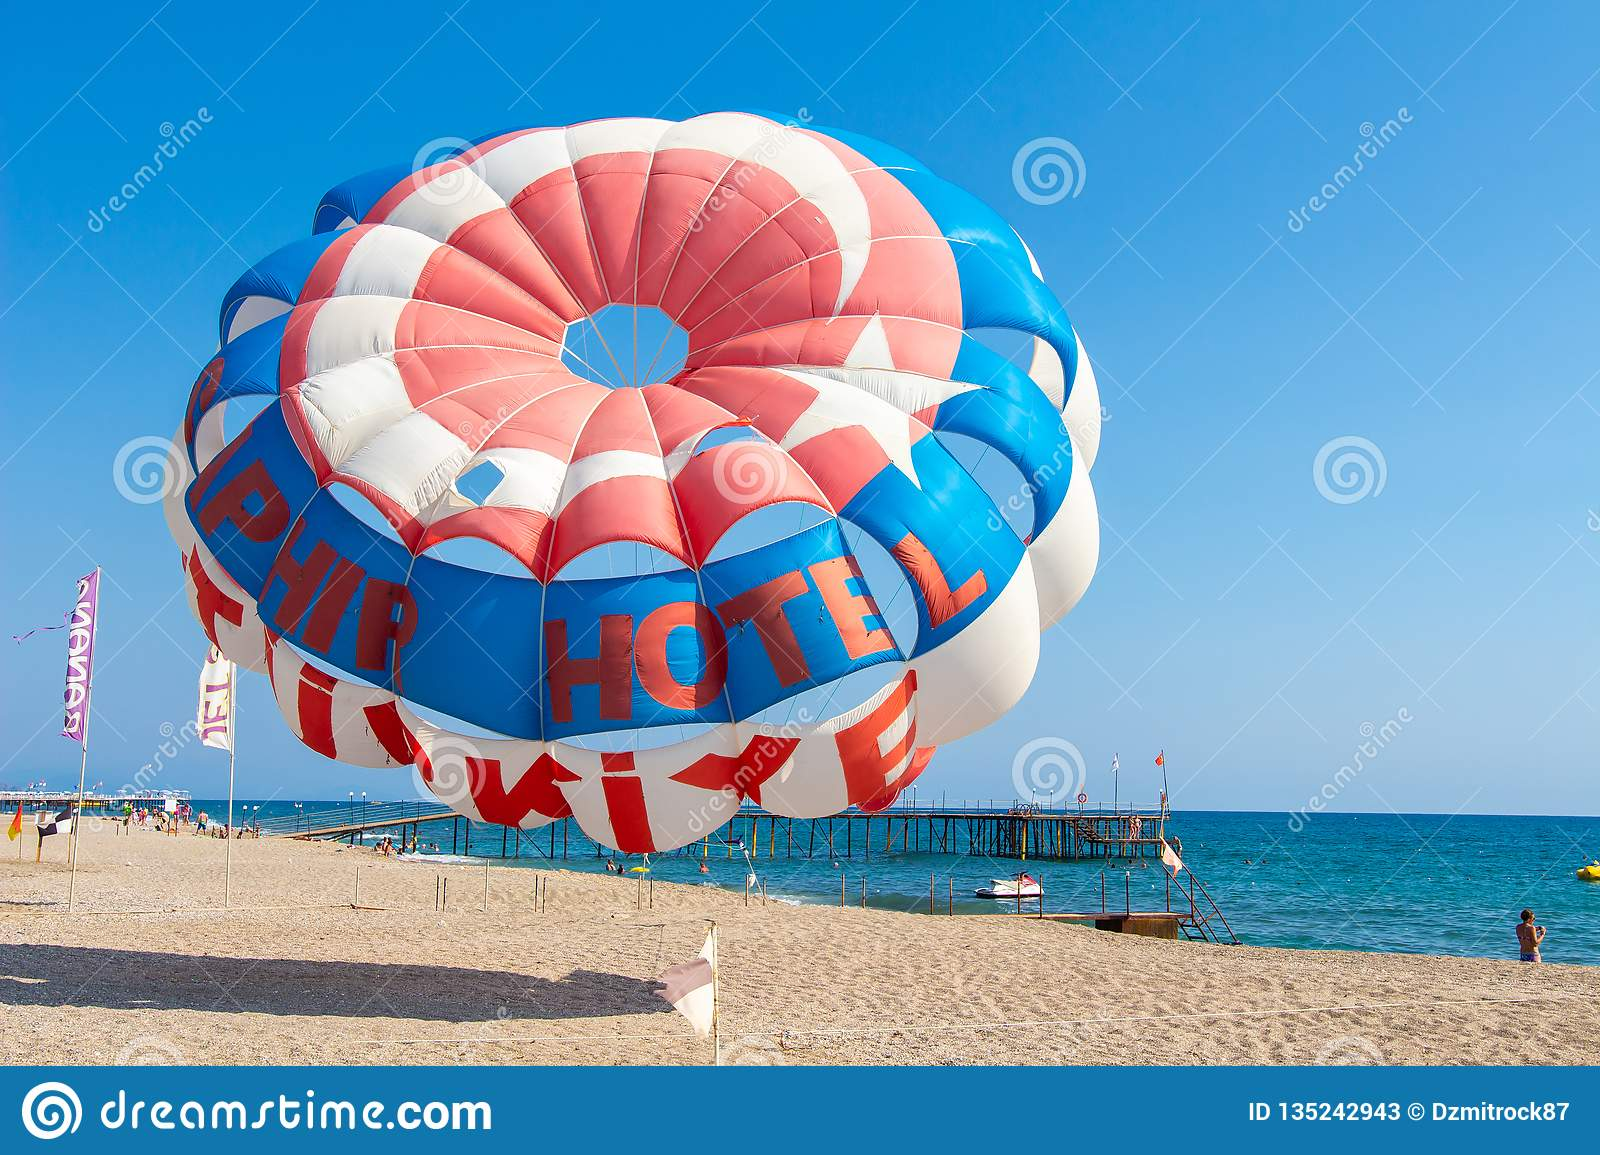 Is Parasailing Safe? An Overview of Parasailing Safety